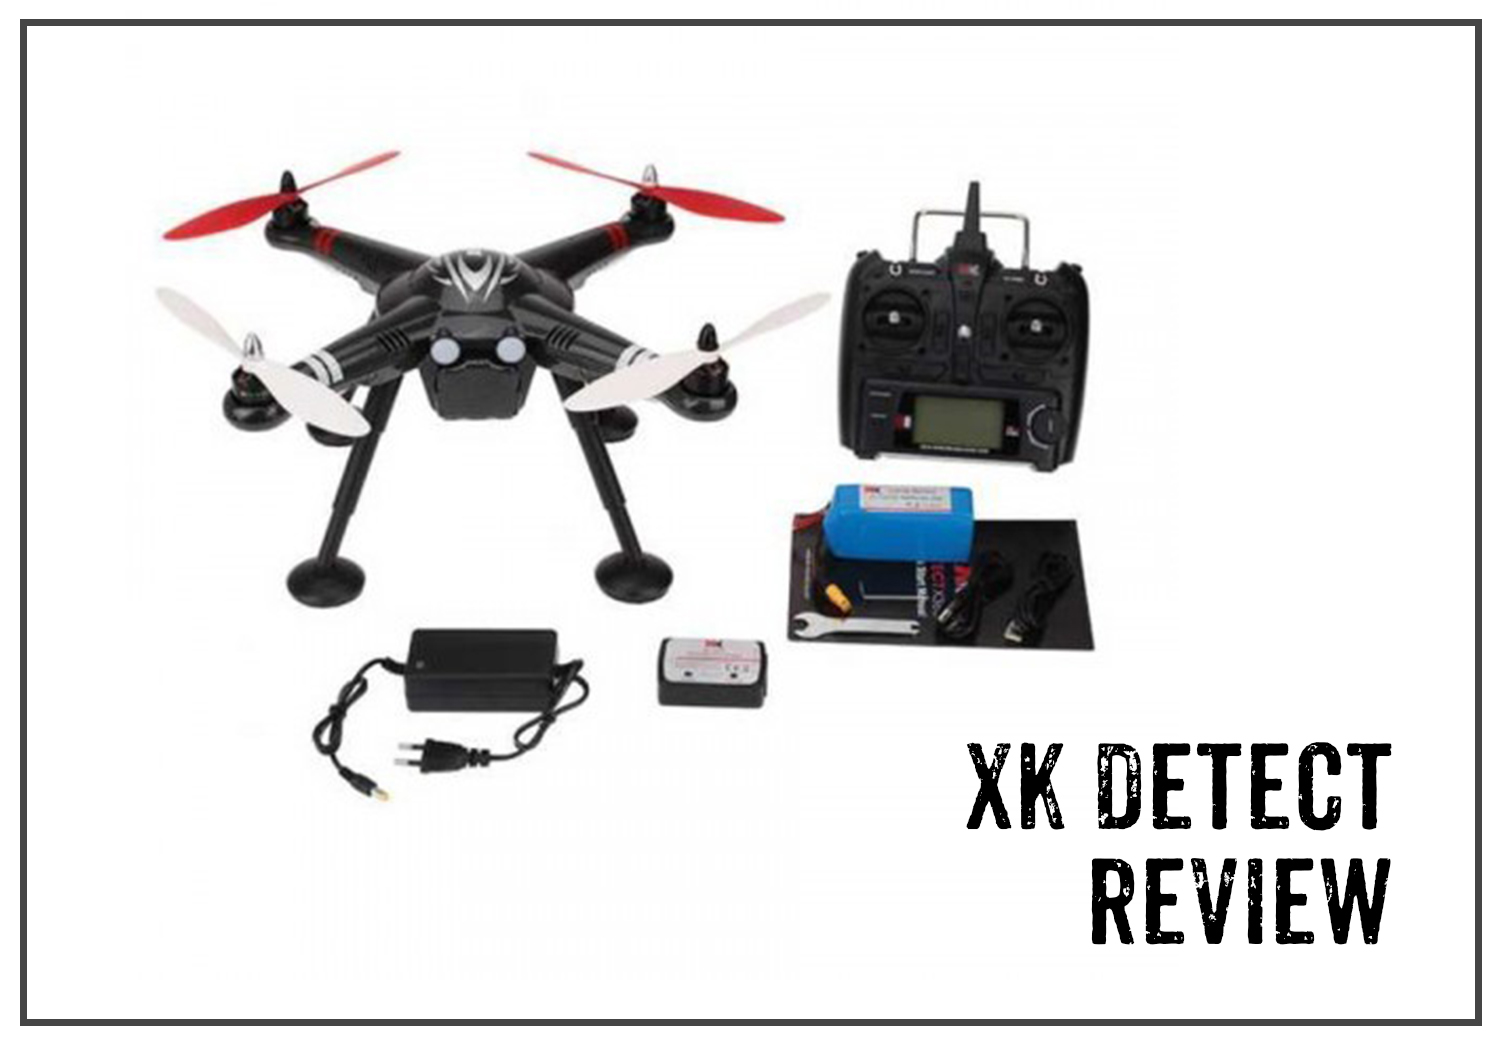 XK DetectReview-Reliable and Powerful Drone for Long Aerial Video Shoots